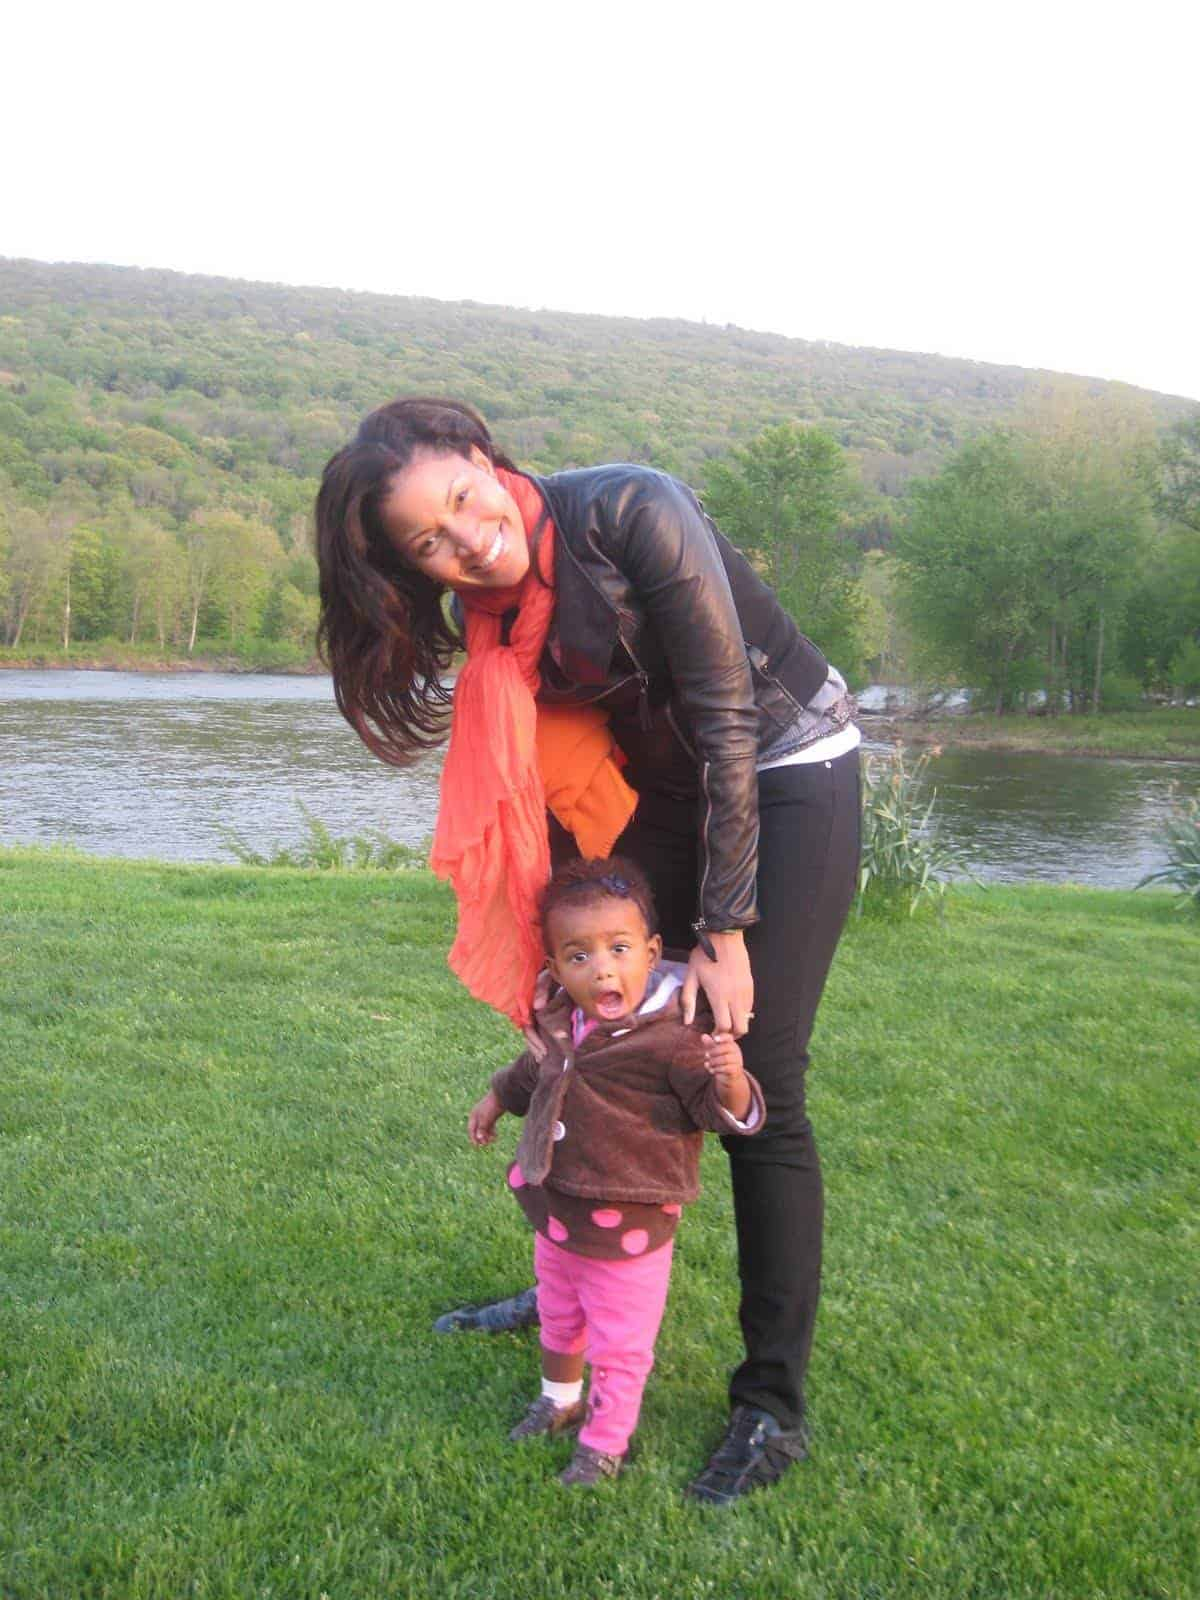 Mommy and daughter in the Poconos